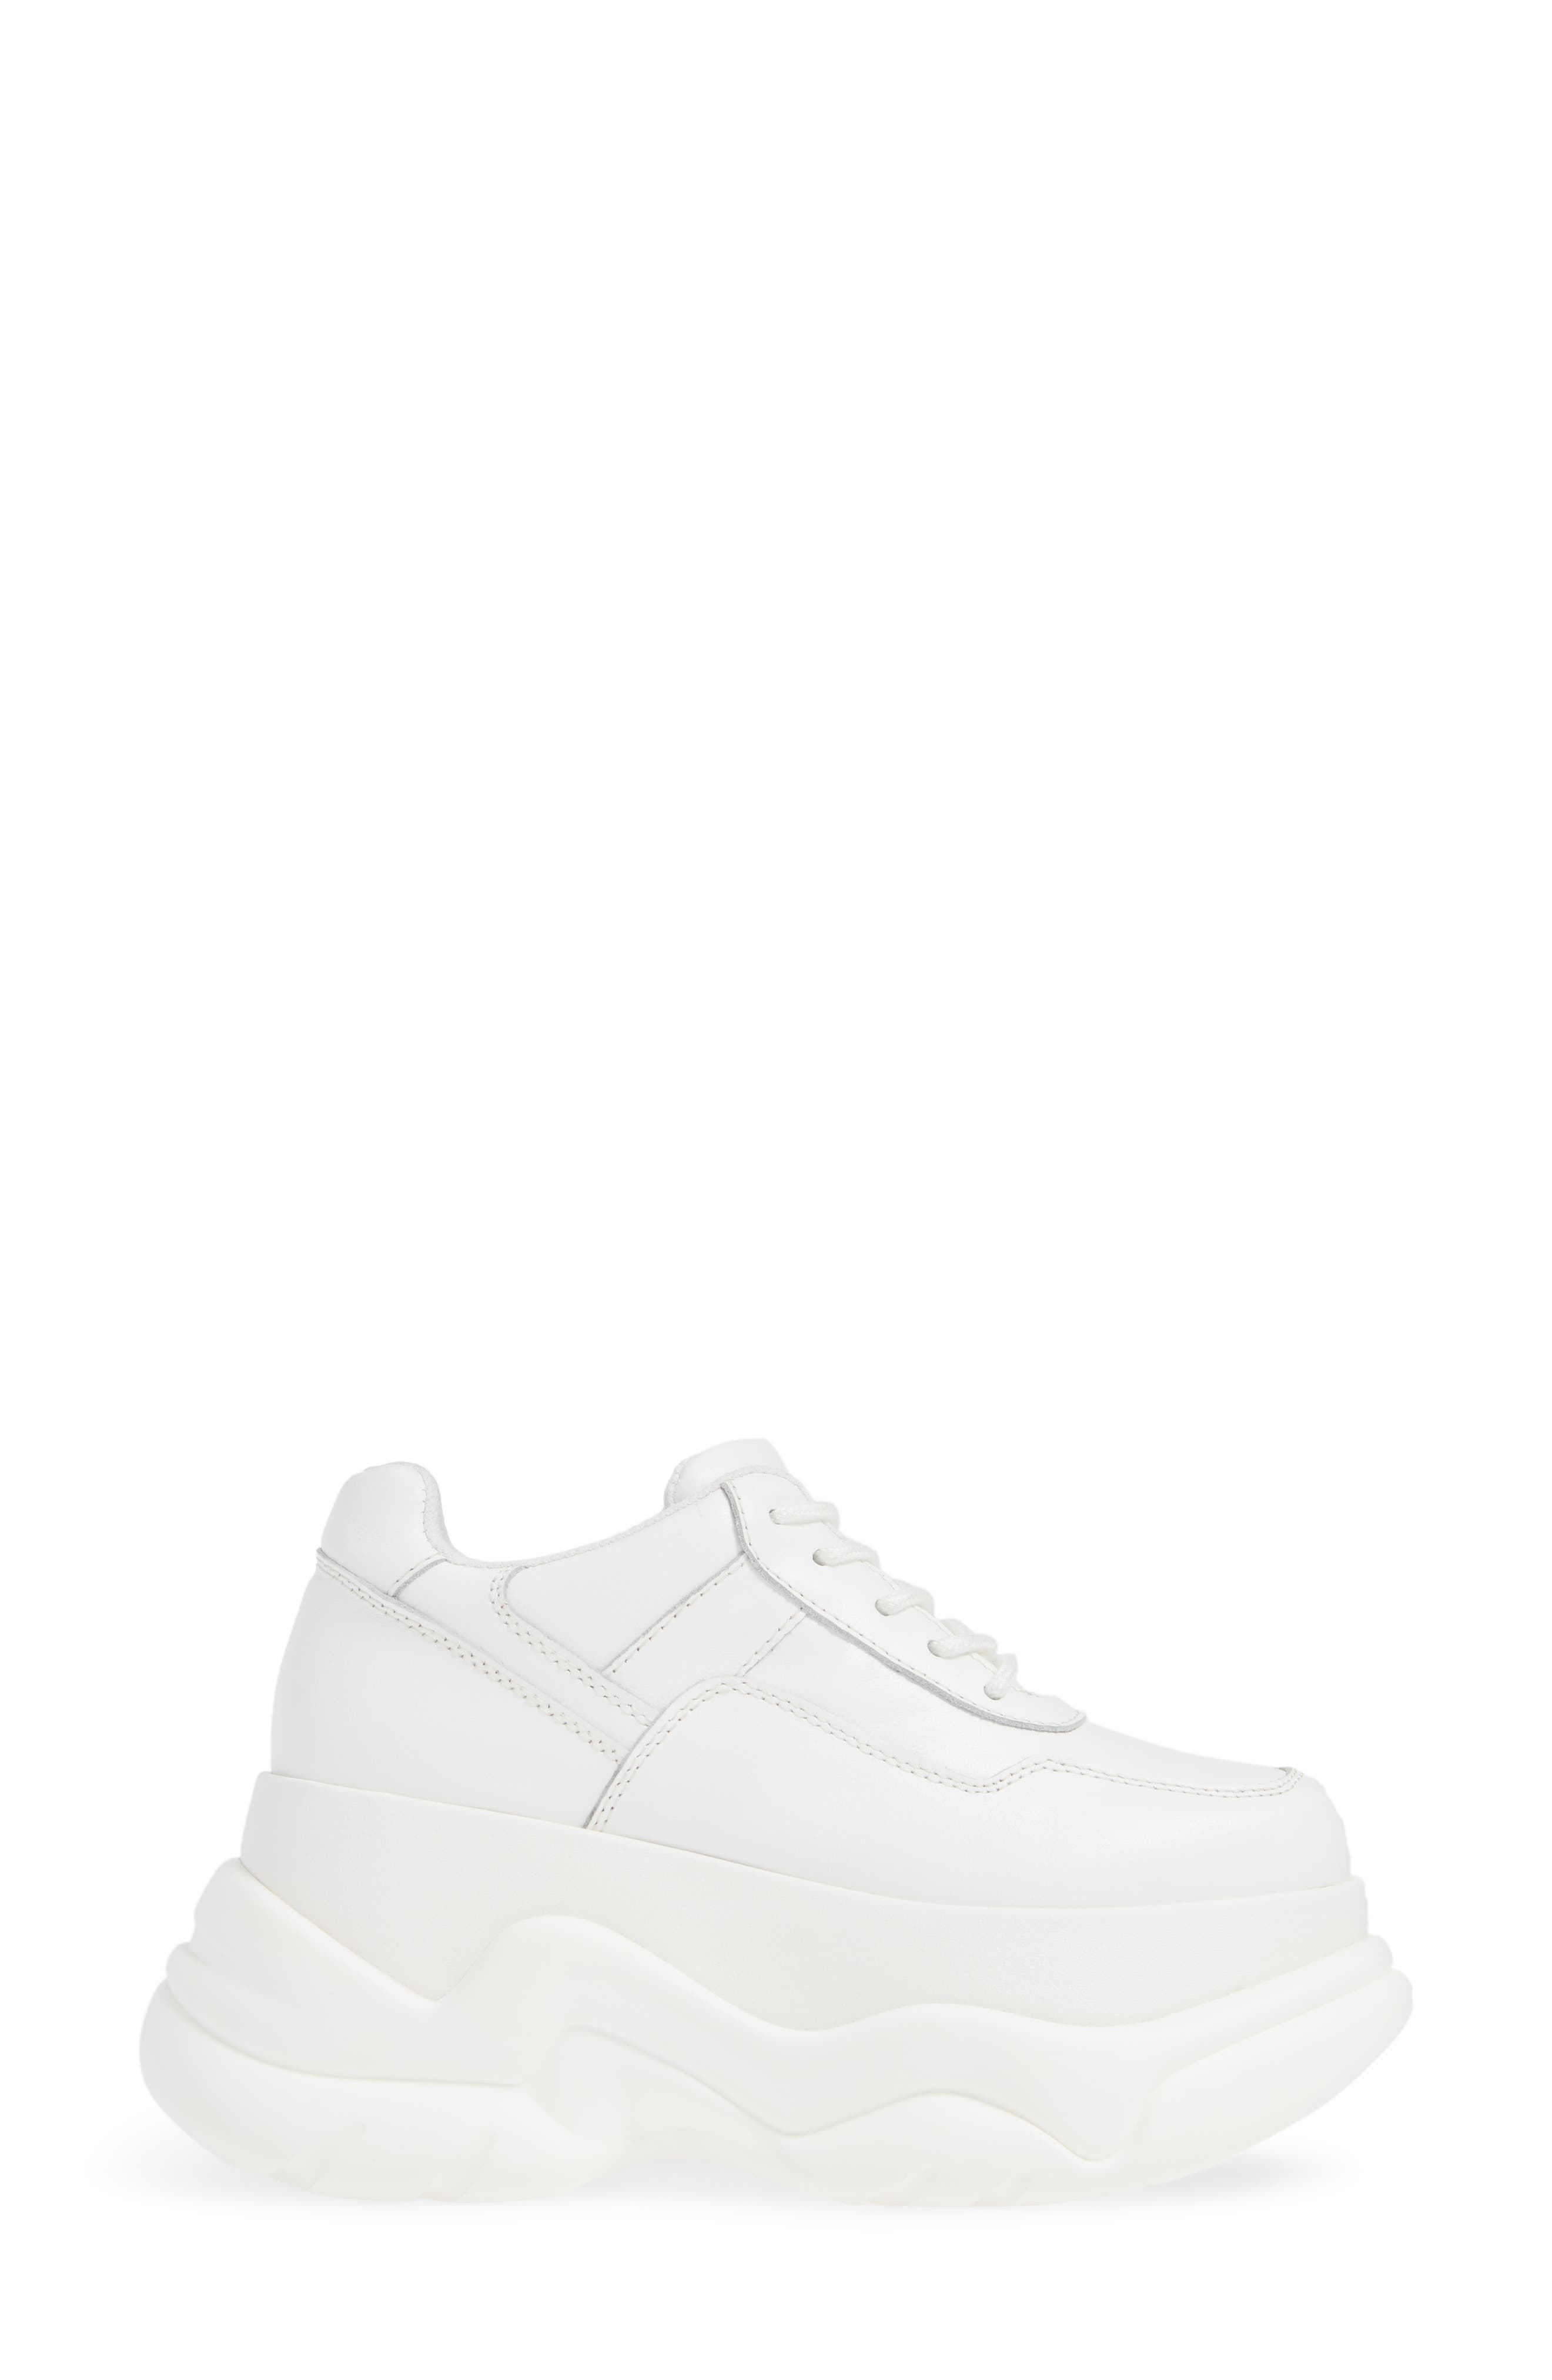 JEFFREY CAMPBELL, Most Def Wedge Sneaker, Alternate thumbnail 3, color, WHITE/ WHITE LEATHER